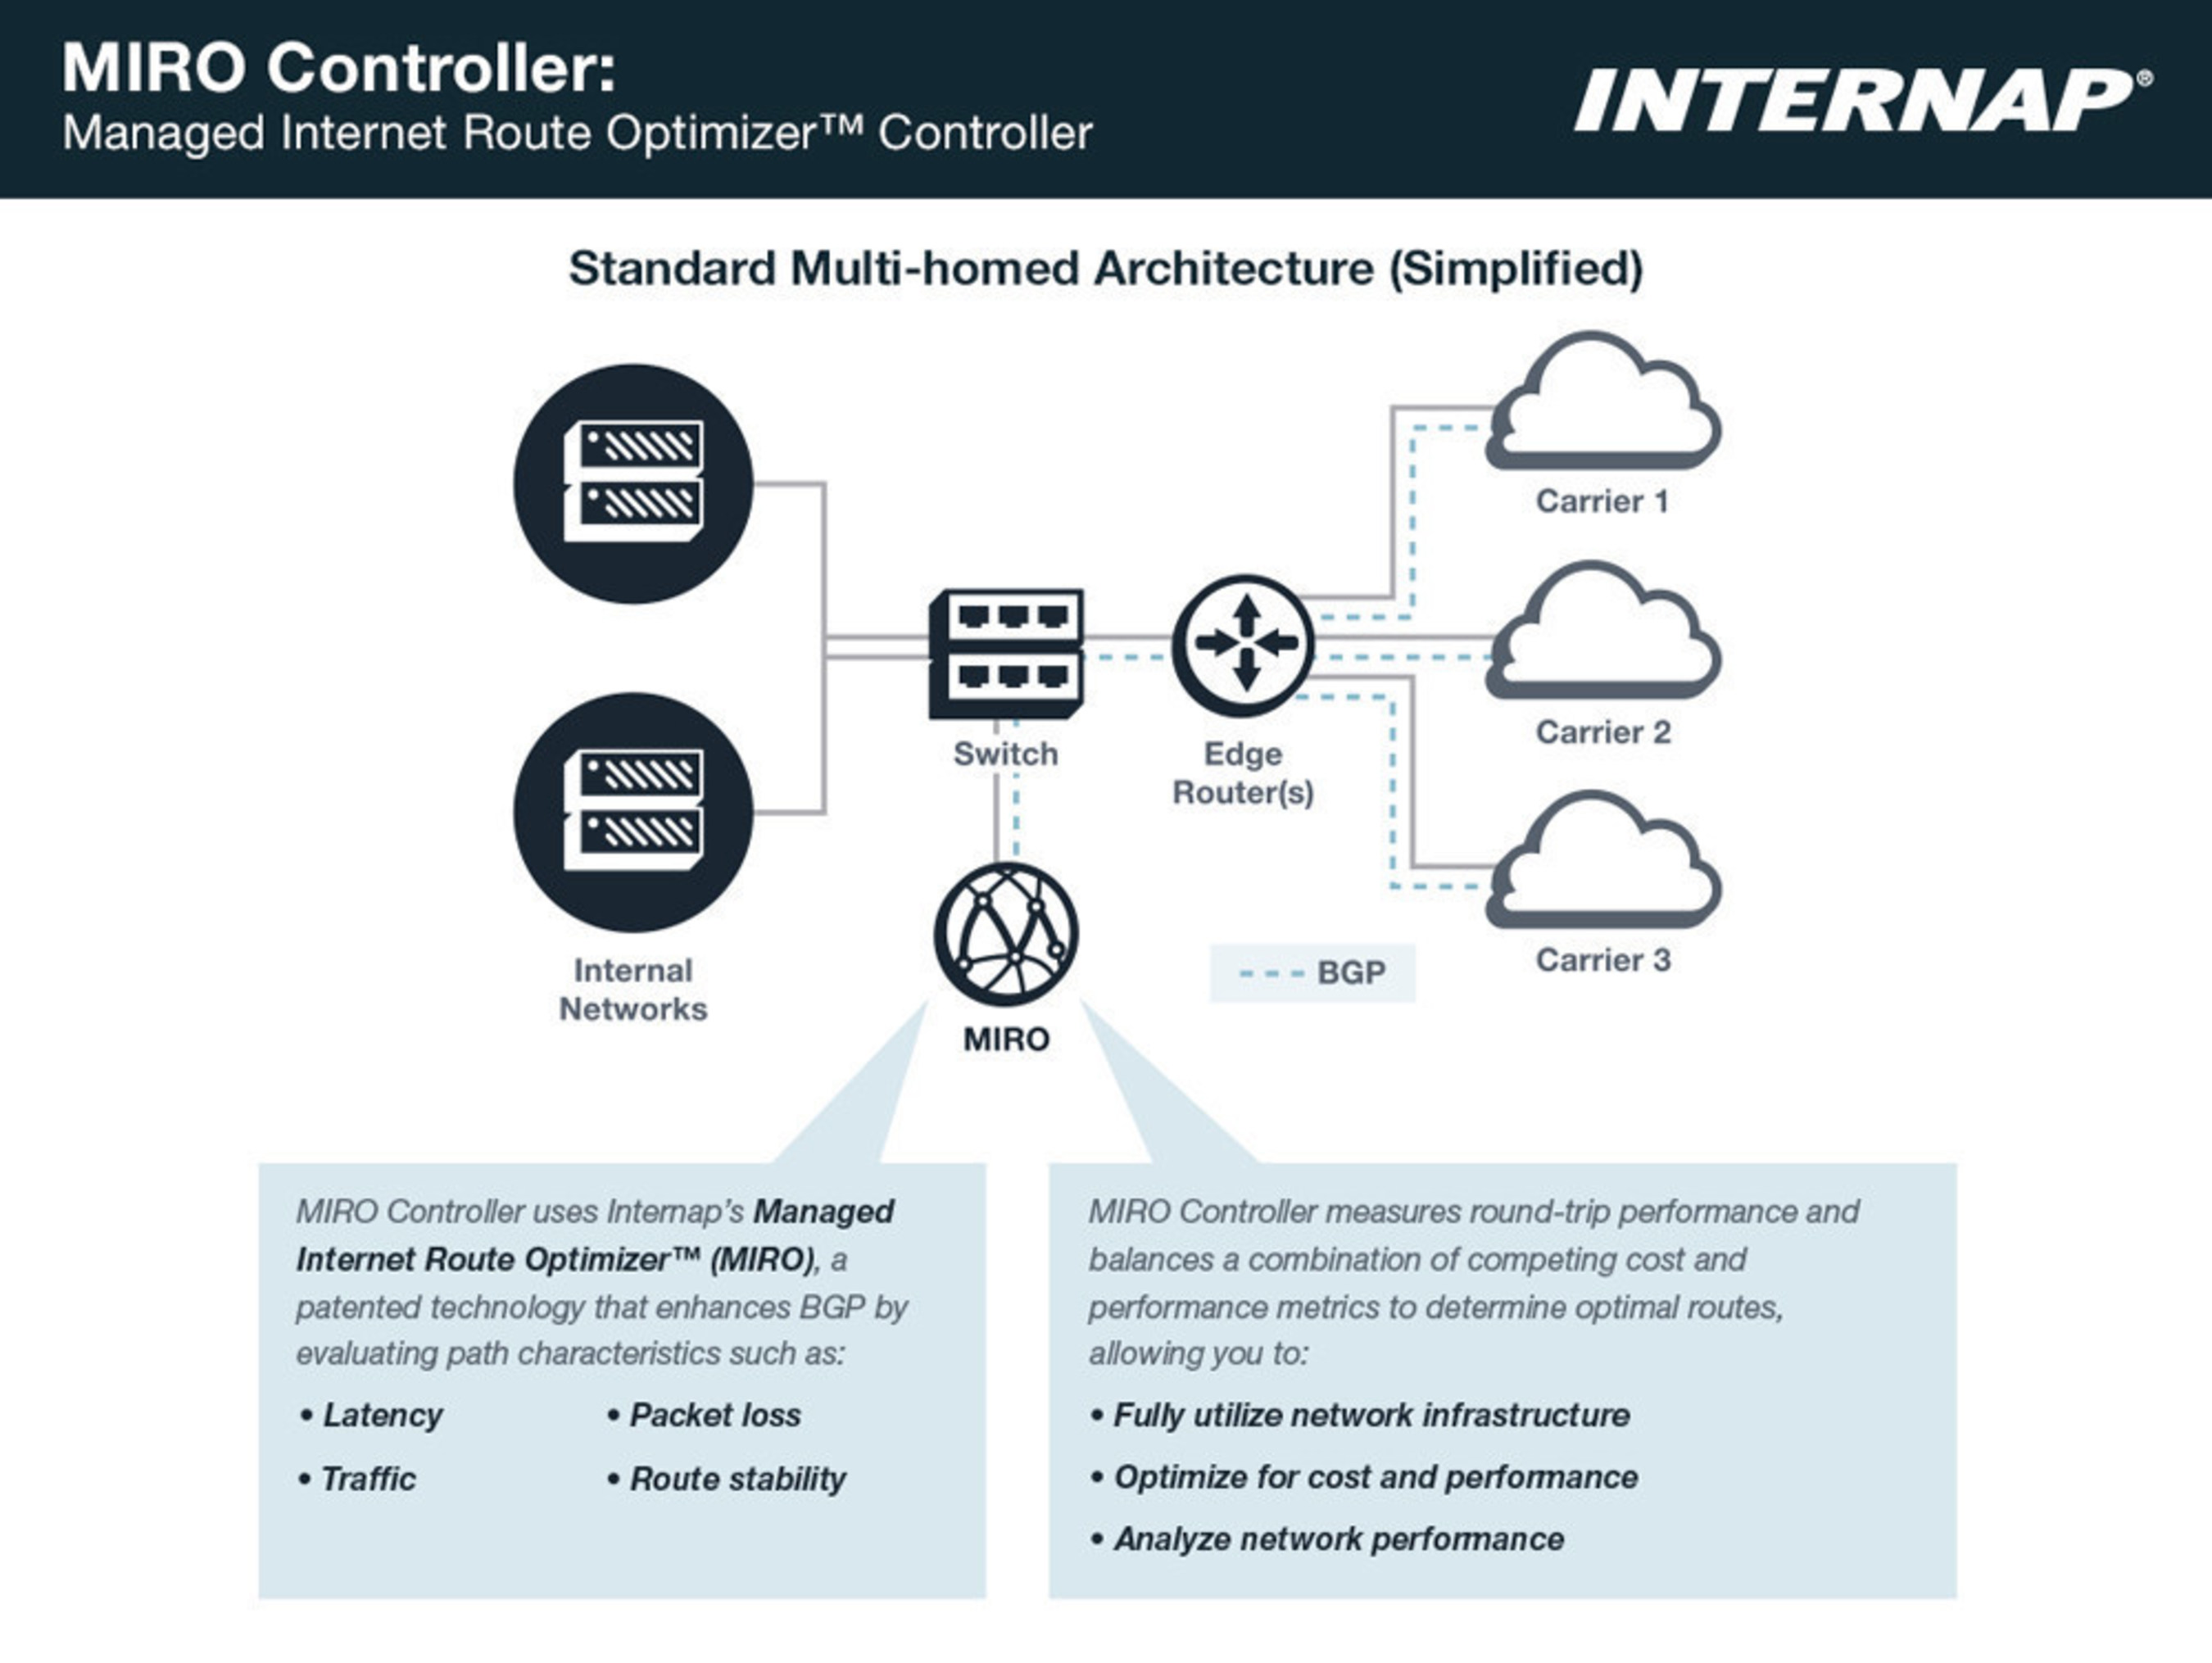 Internap's MIRO Controller is an on-premise appliance that automates traffic routing, helping enterprises ...